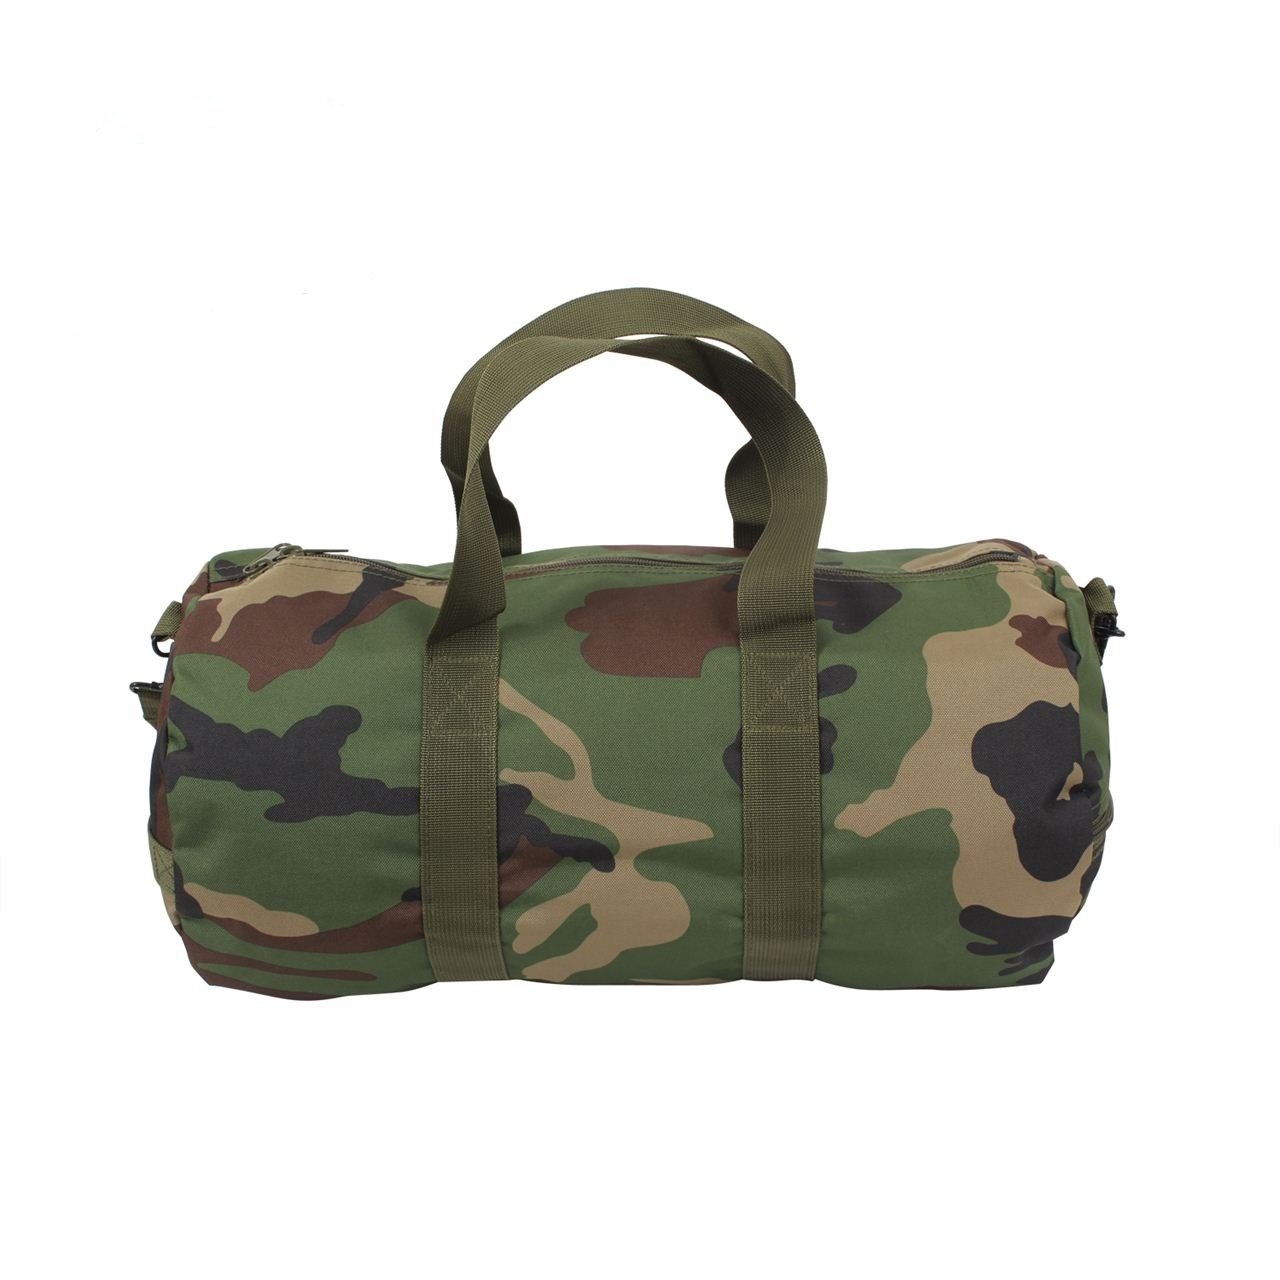 Camouflage Woodland Camo Wholesale Overnight Men Sports Tote Duffle Bag